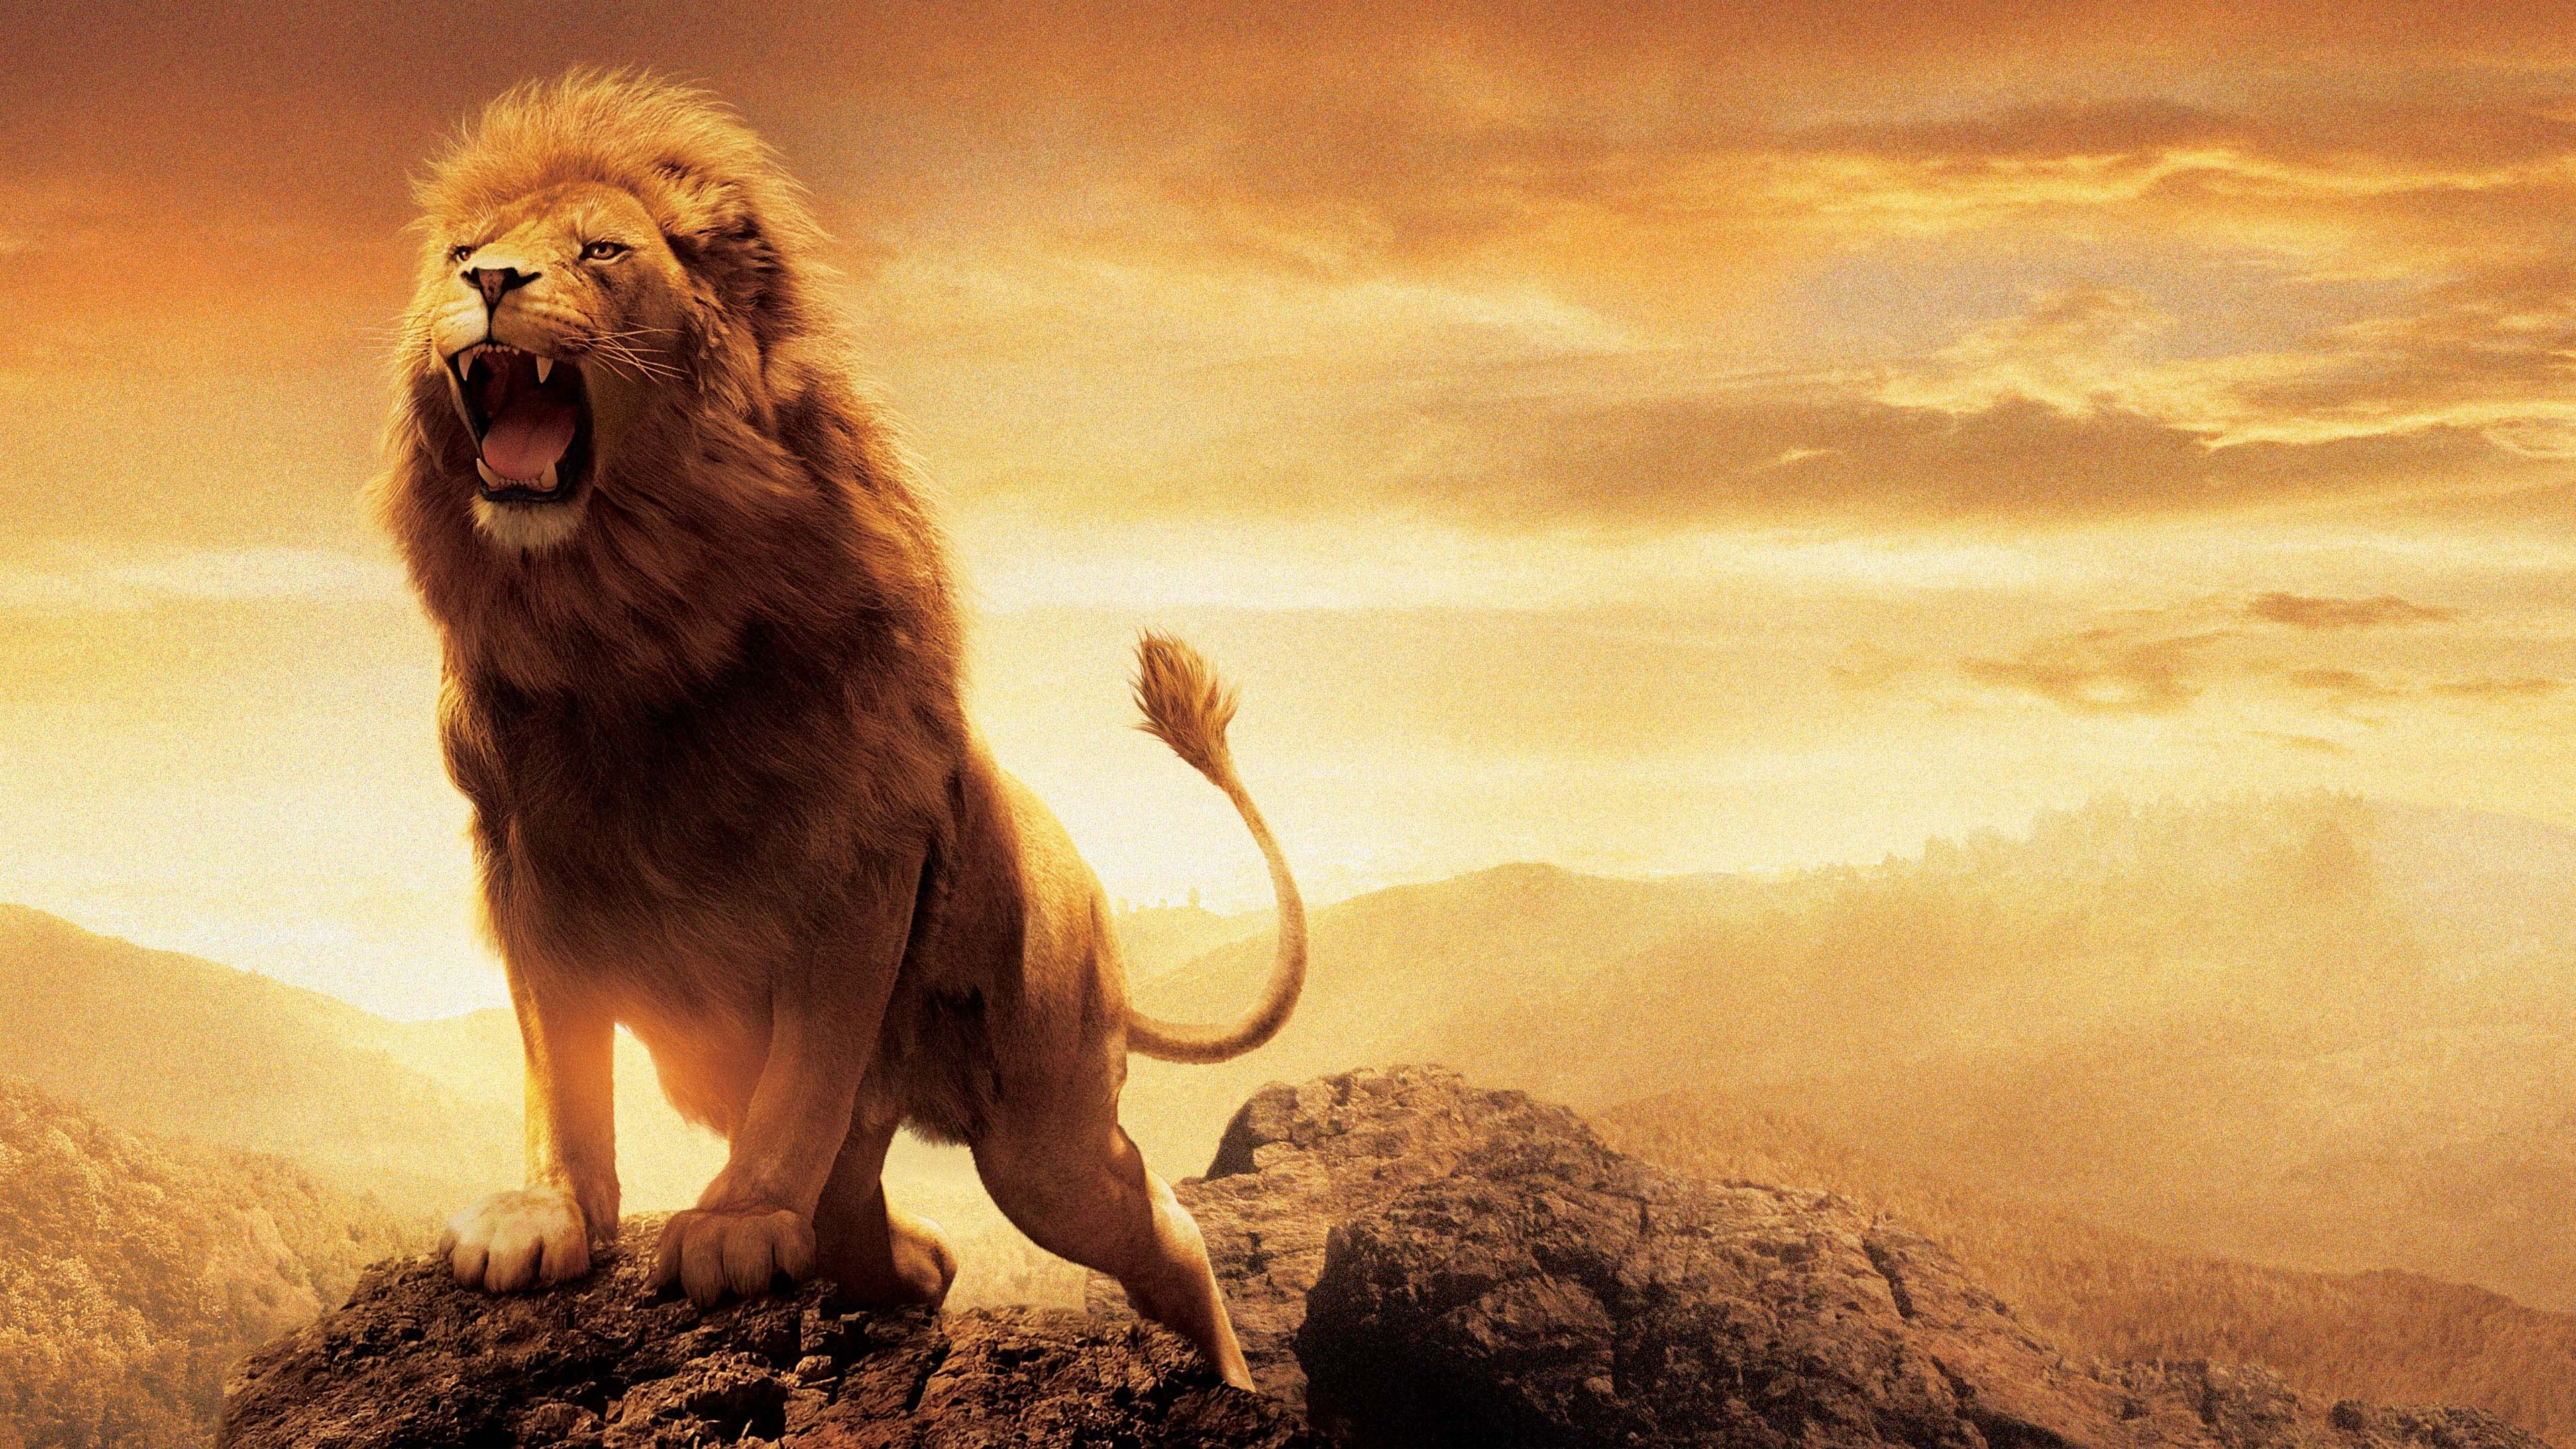 Lion 8k Wallpapers Top Free Lion 8k Backgrounds Wallpaperaccess Images, Photos, Reviews